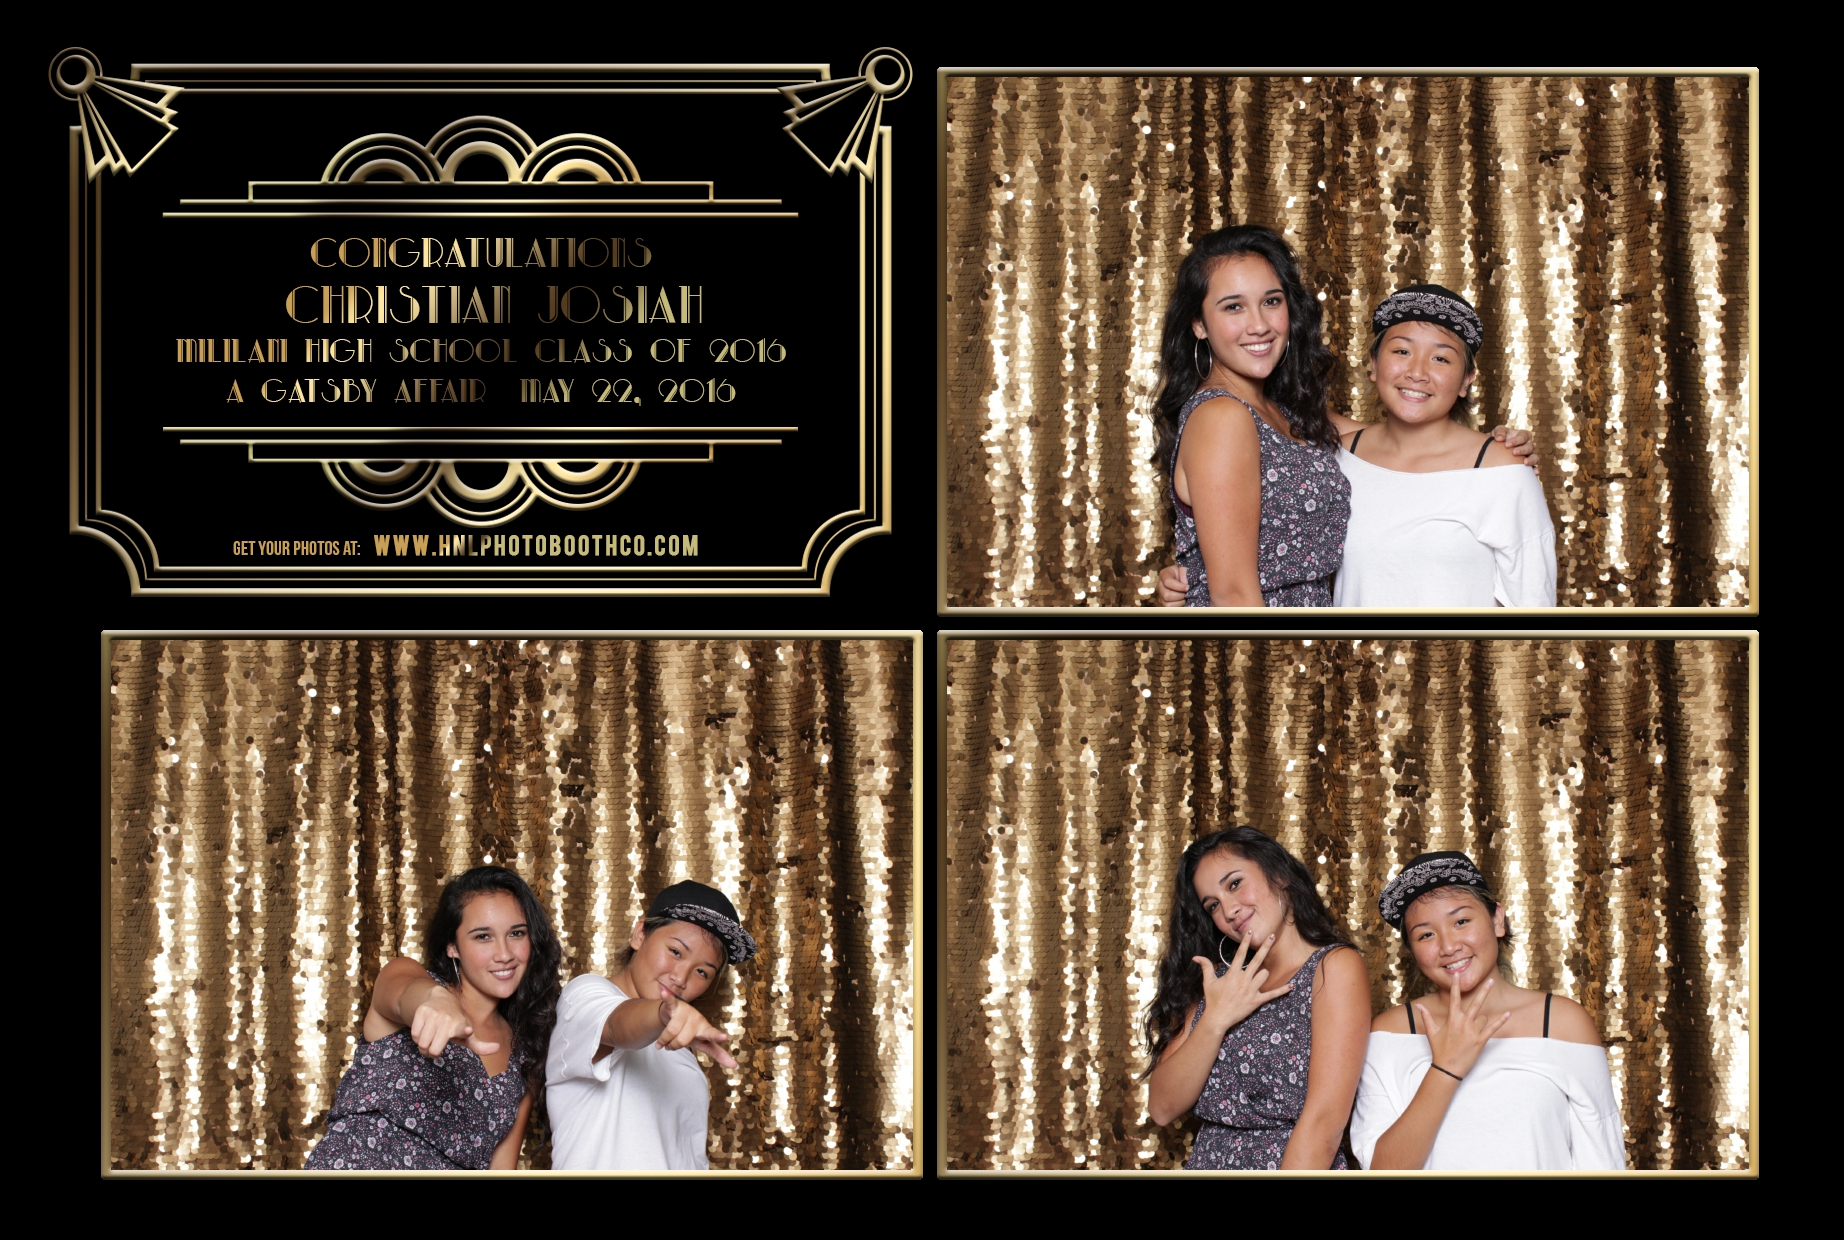 The Great Gatsby Christians Graduation Party Photo